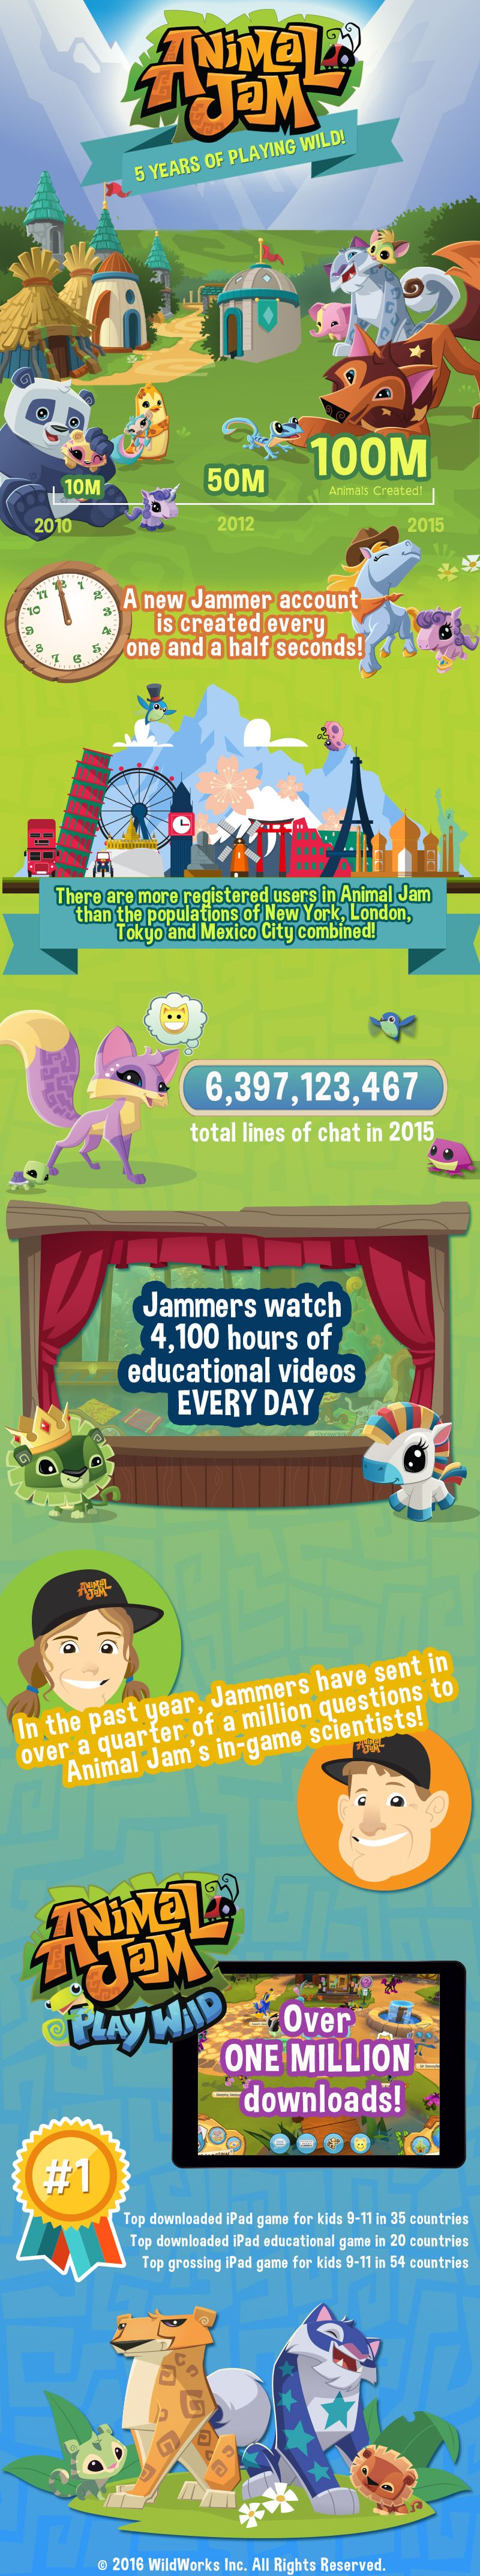 Animal Jam Named Fastest Growing Gaming Site in the United States by SimilarWeb